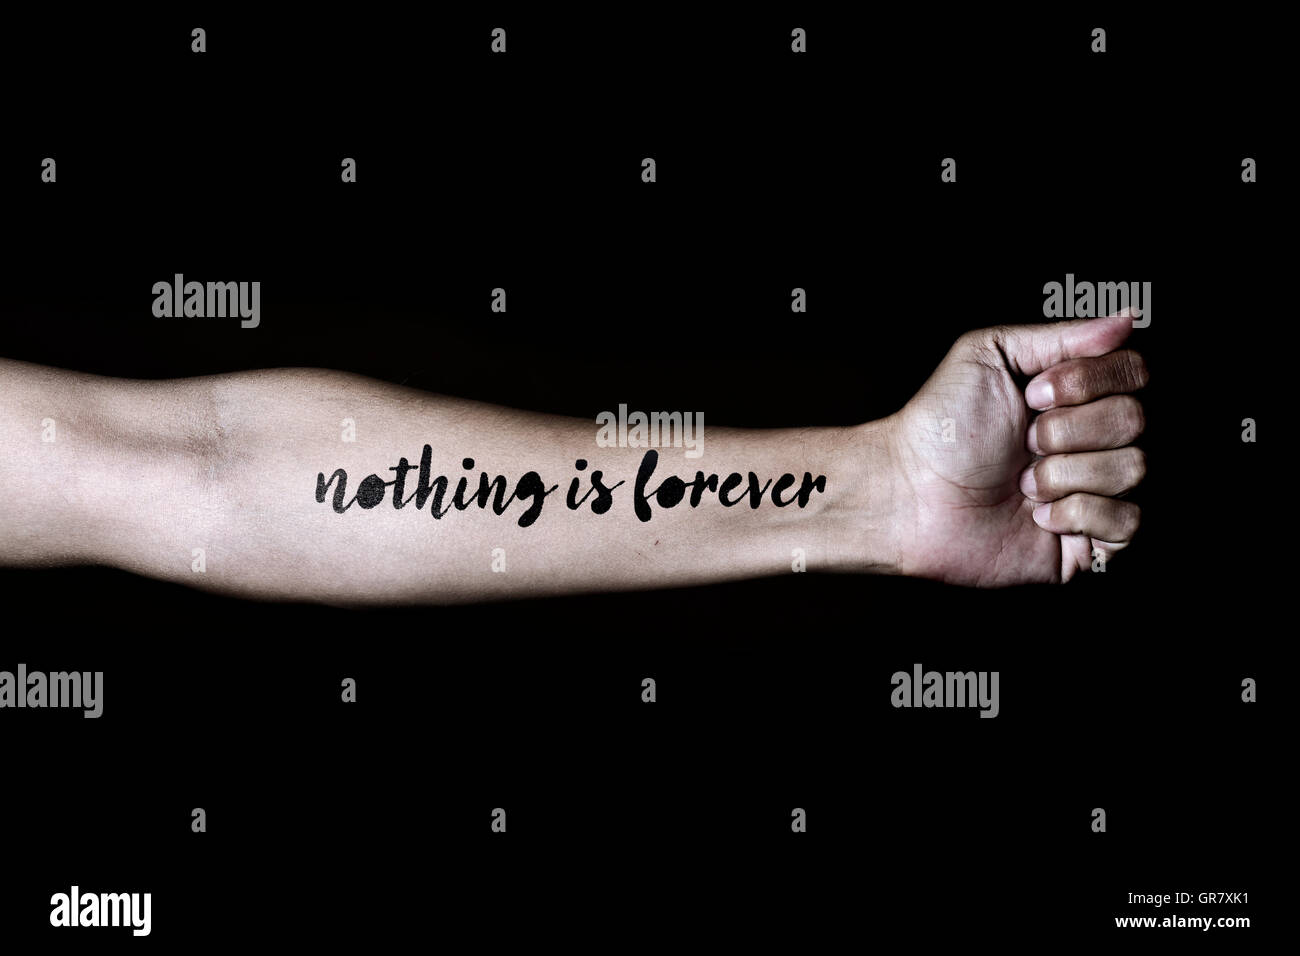 closeup of a young caucasian man with the text nothing is forever simulating a tattoo in his forearm, against a - Stock Image